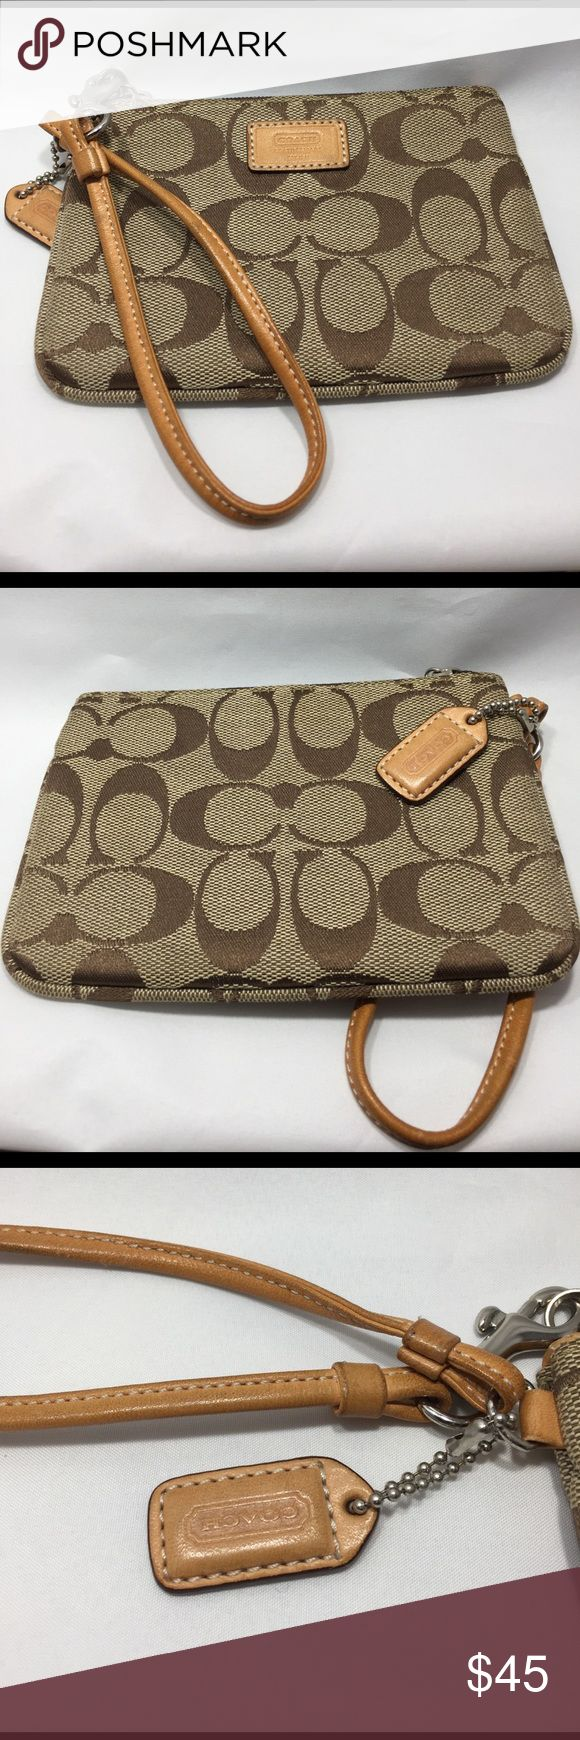 Signature Coach Wristlet NWOT Signature Coach Wristlet. NWOT just in time for the summer. Perfect for those nights out with the girls or going to the casino. Coach Bags